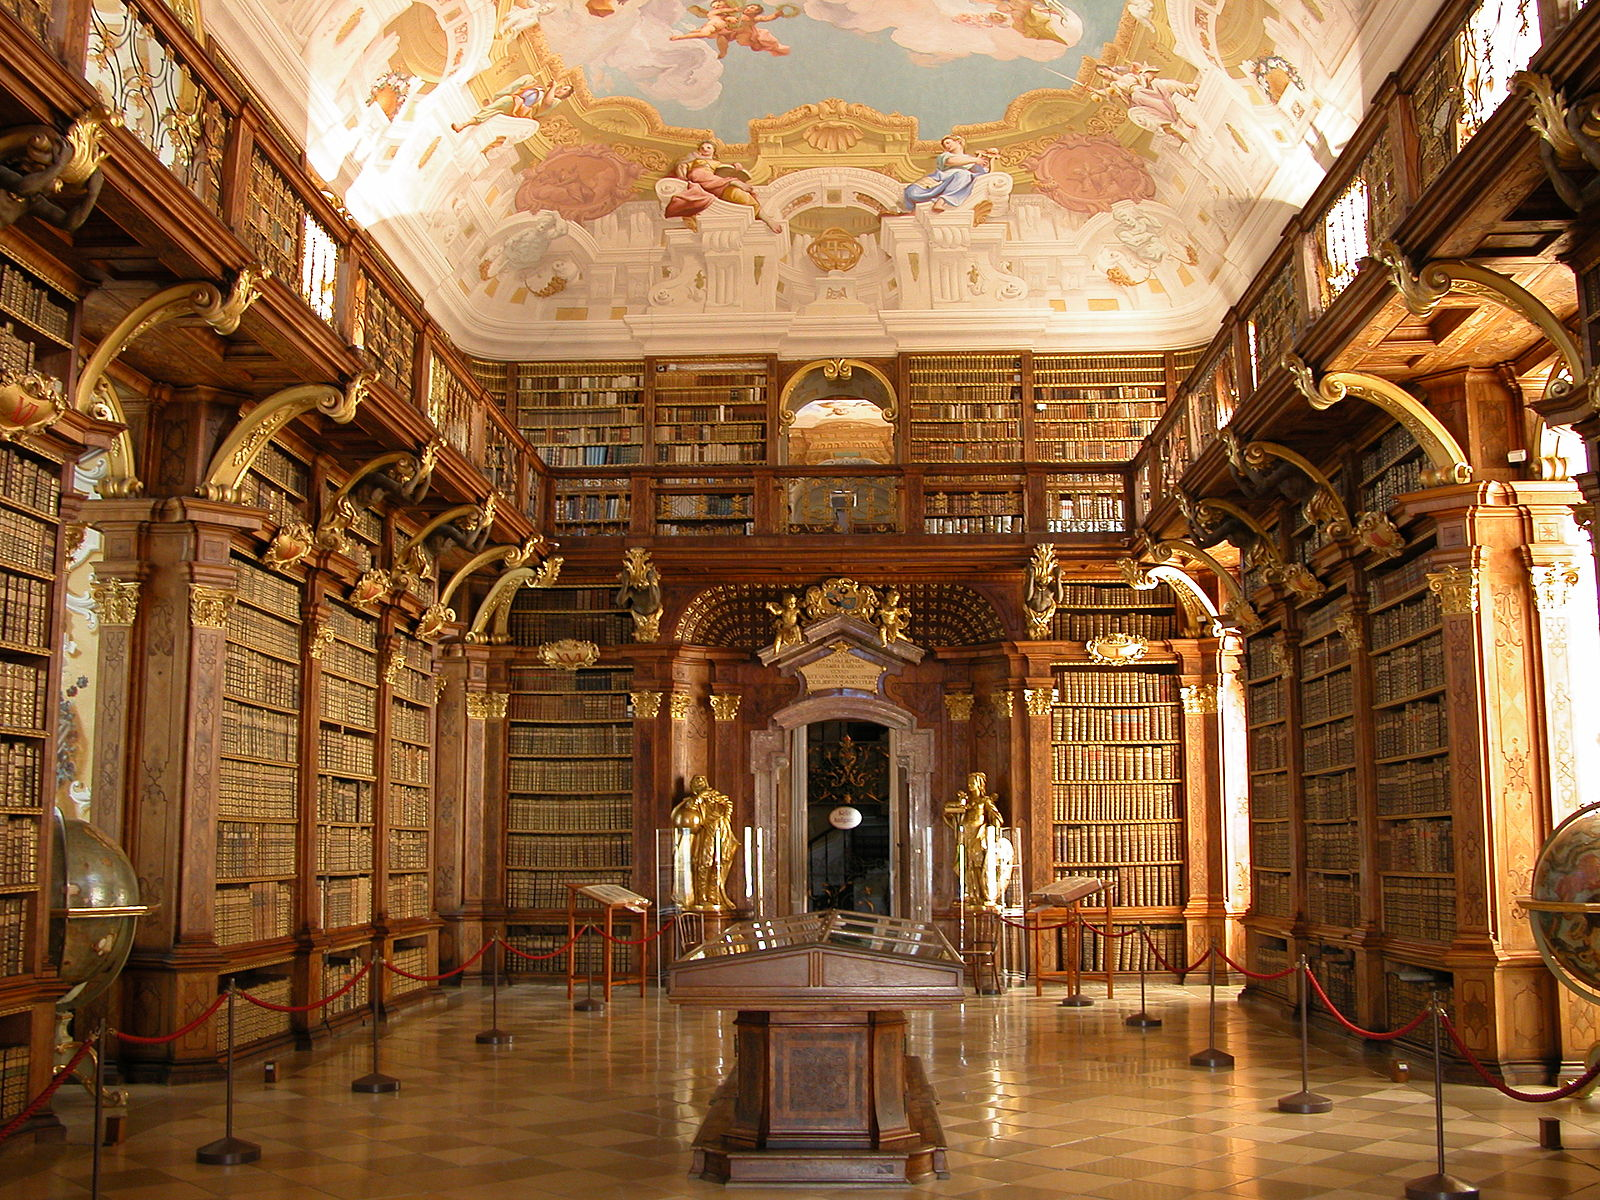 Libraries and Special Collections: Visiting Libraries in Austria